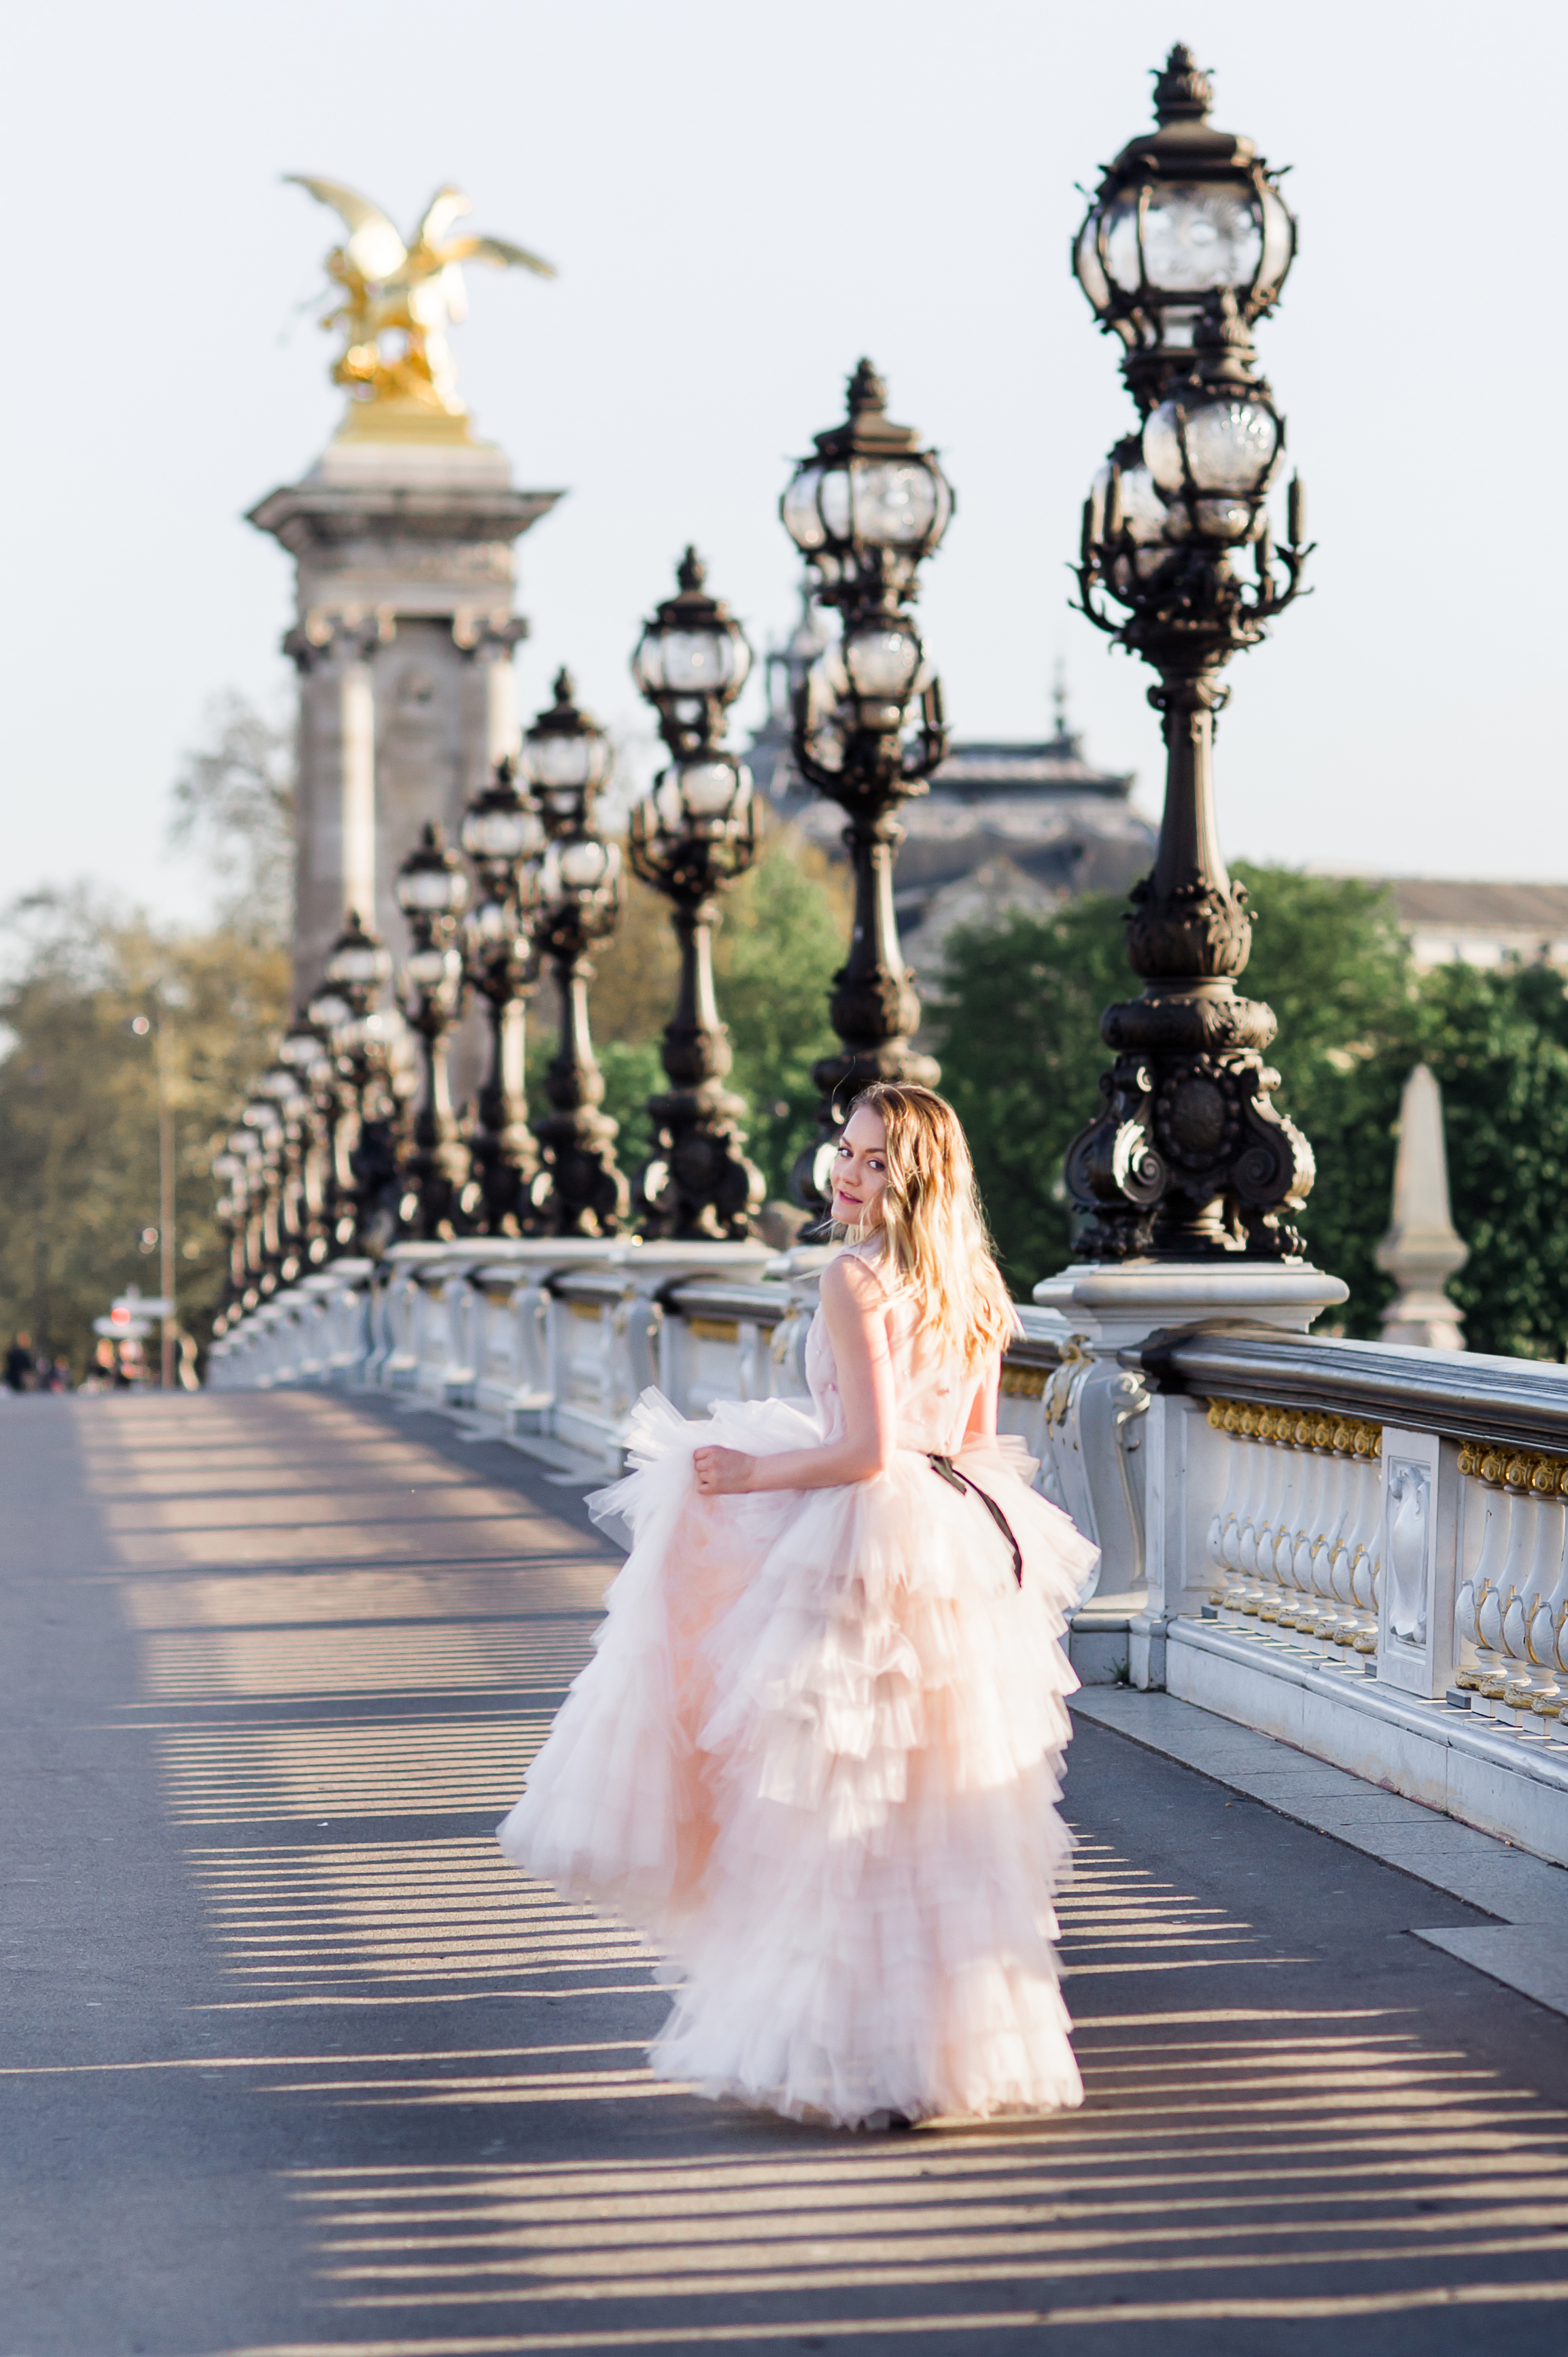 The    Alexandre III Bridge    is one of the most iconic in Paris and is a MUST visit during your next photoshoot!